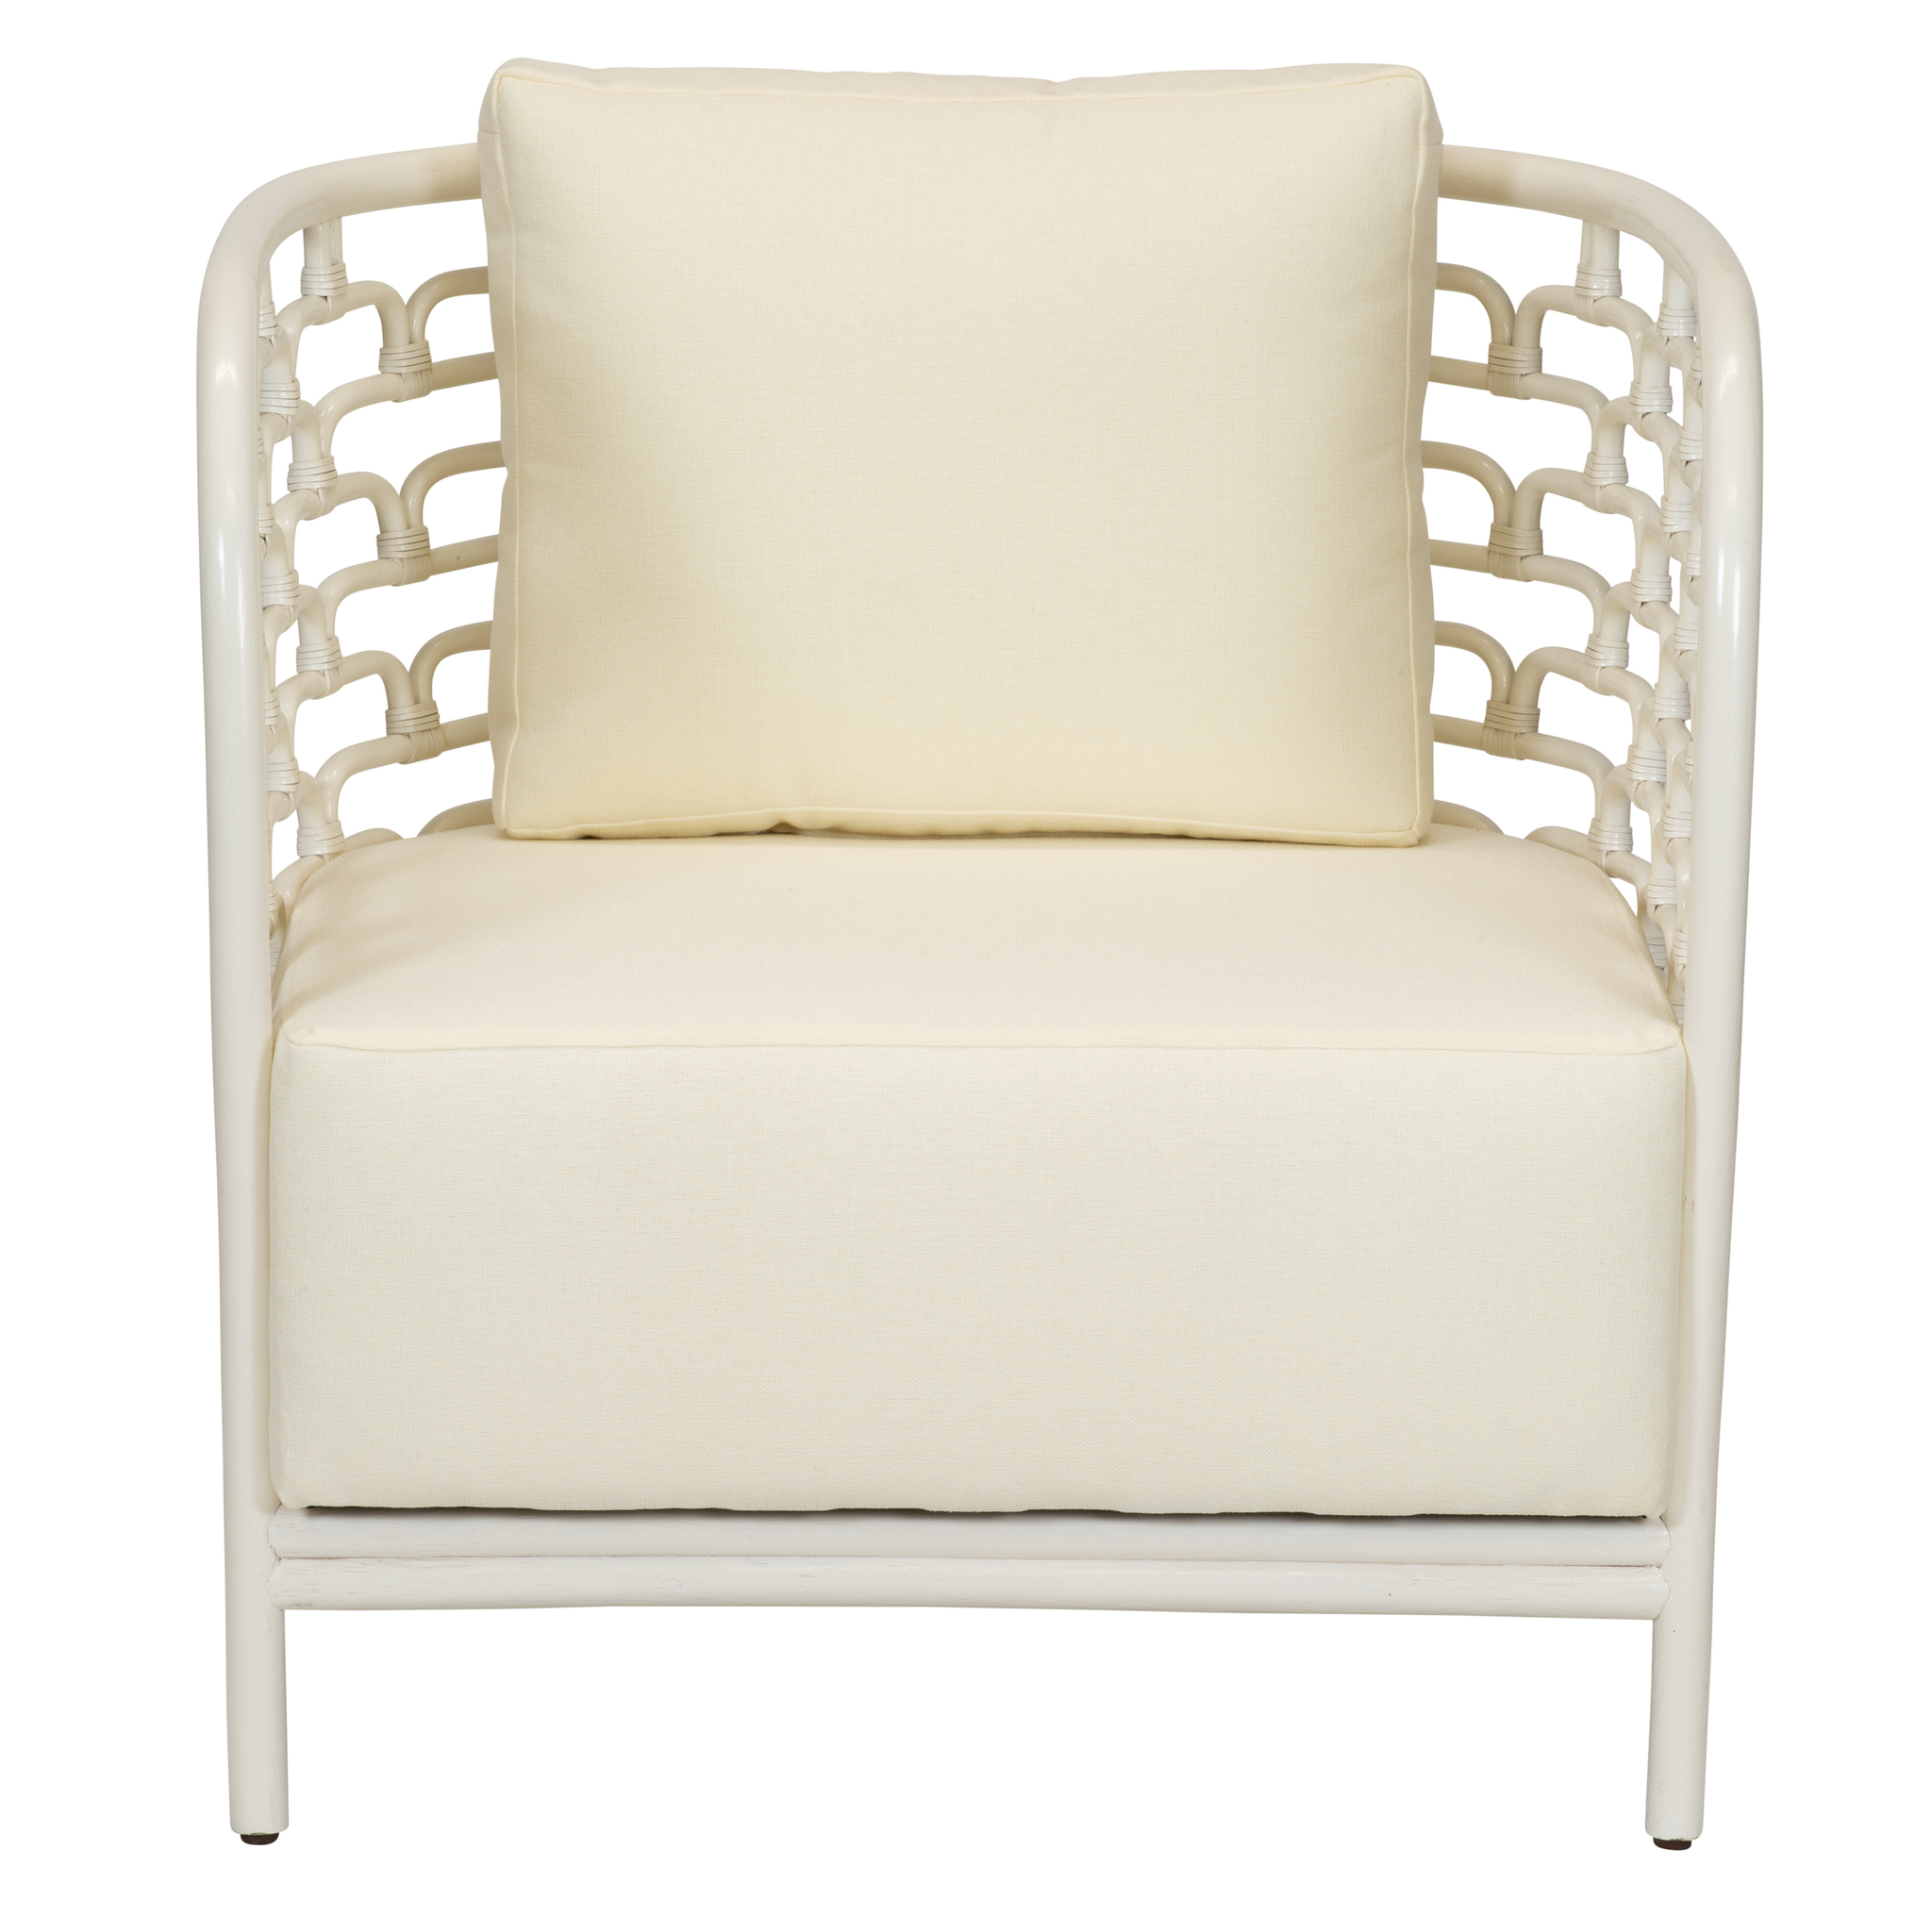 Sydney Mod Steps Barrel Chair   Winter White